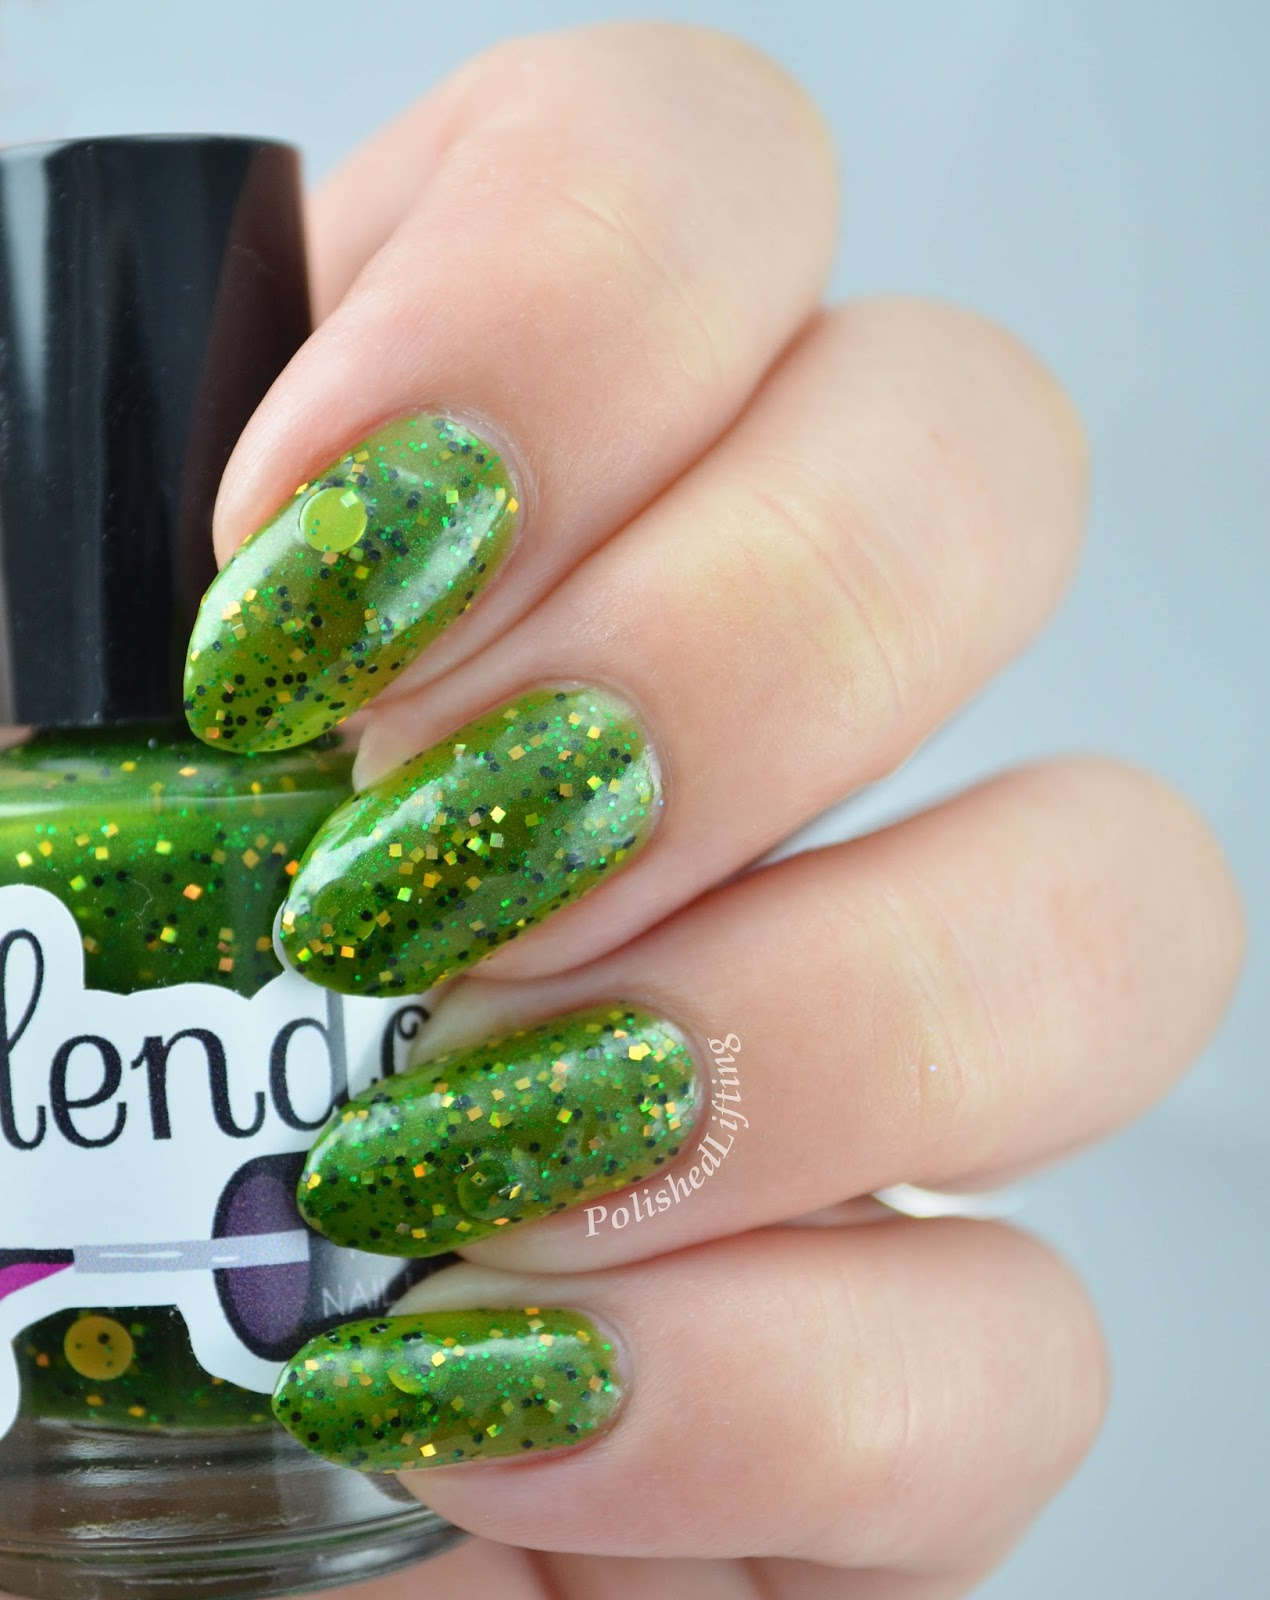 Splendor Nail Lacquer Pirate Points